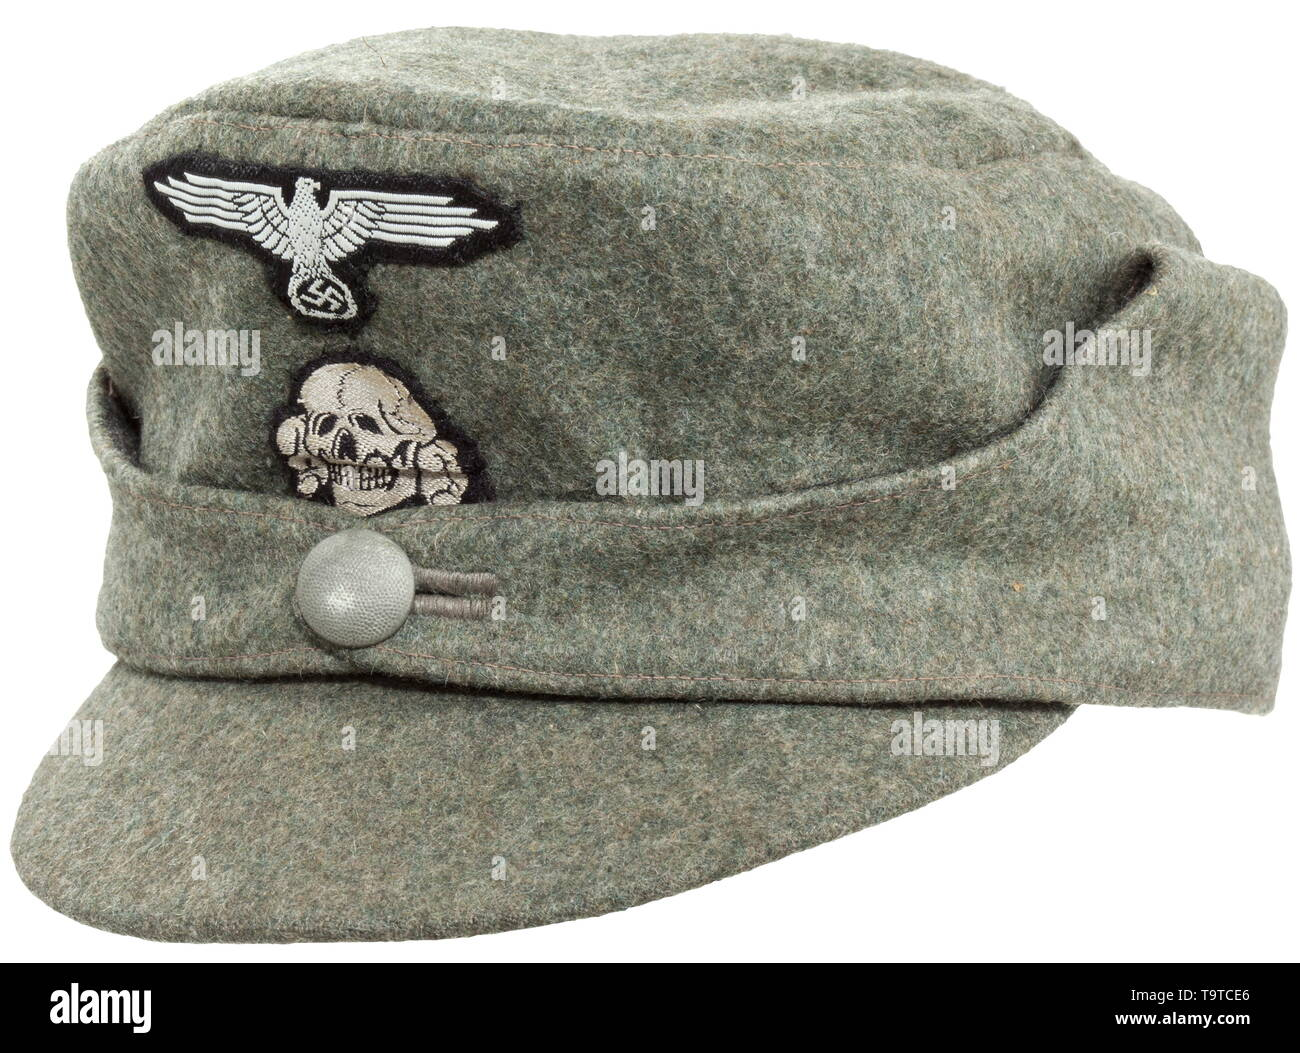 7afb9f1a38d7 A field cap M 43 for enlisted men/NCOs of the Waffen-SS lined